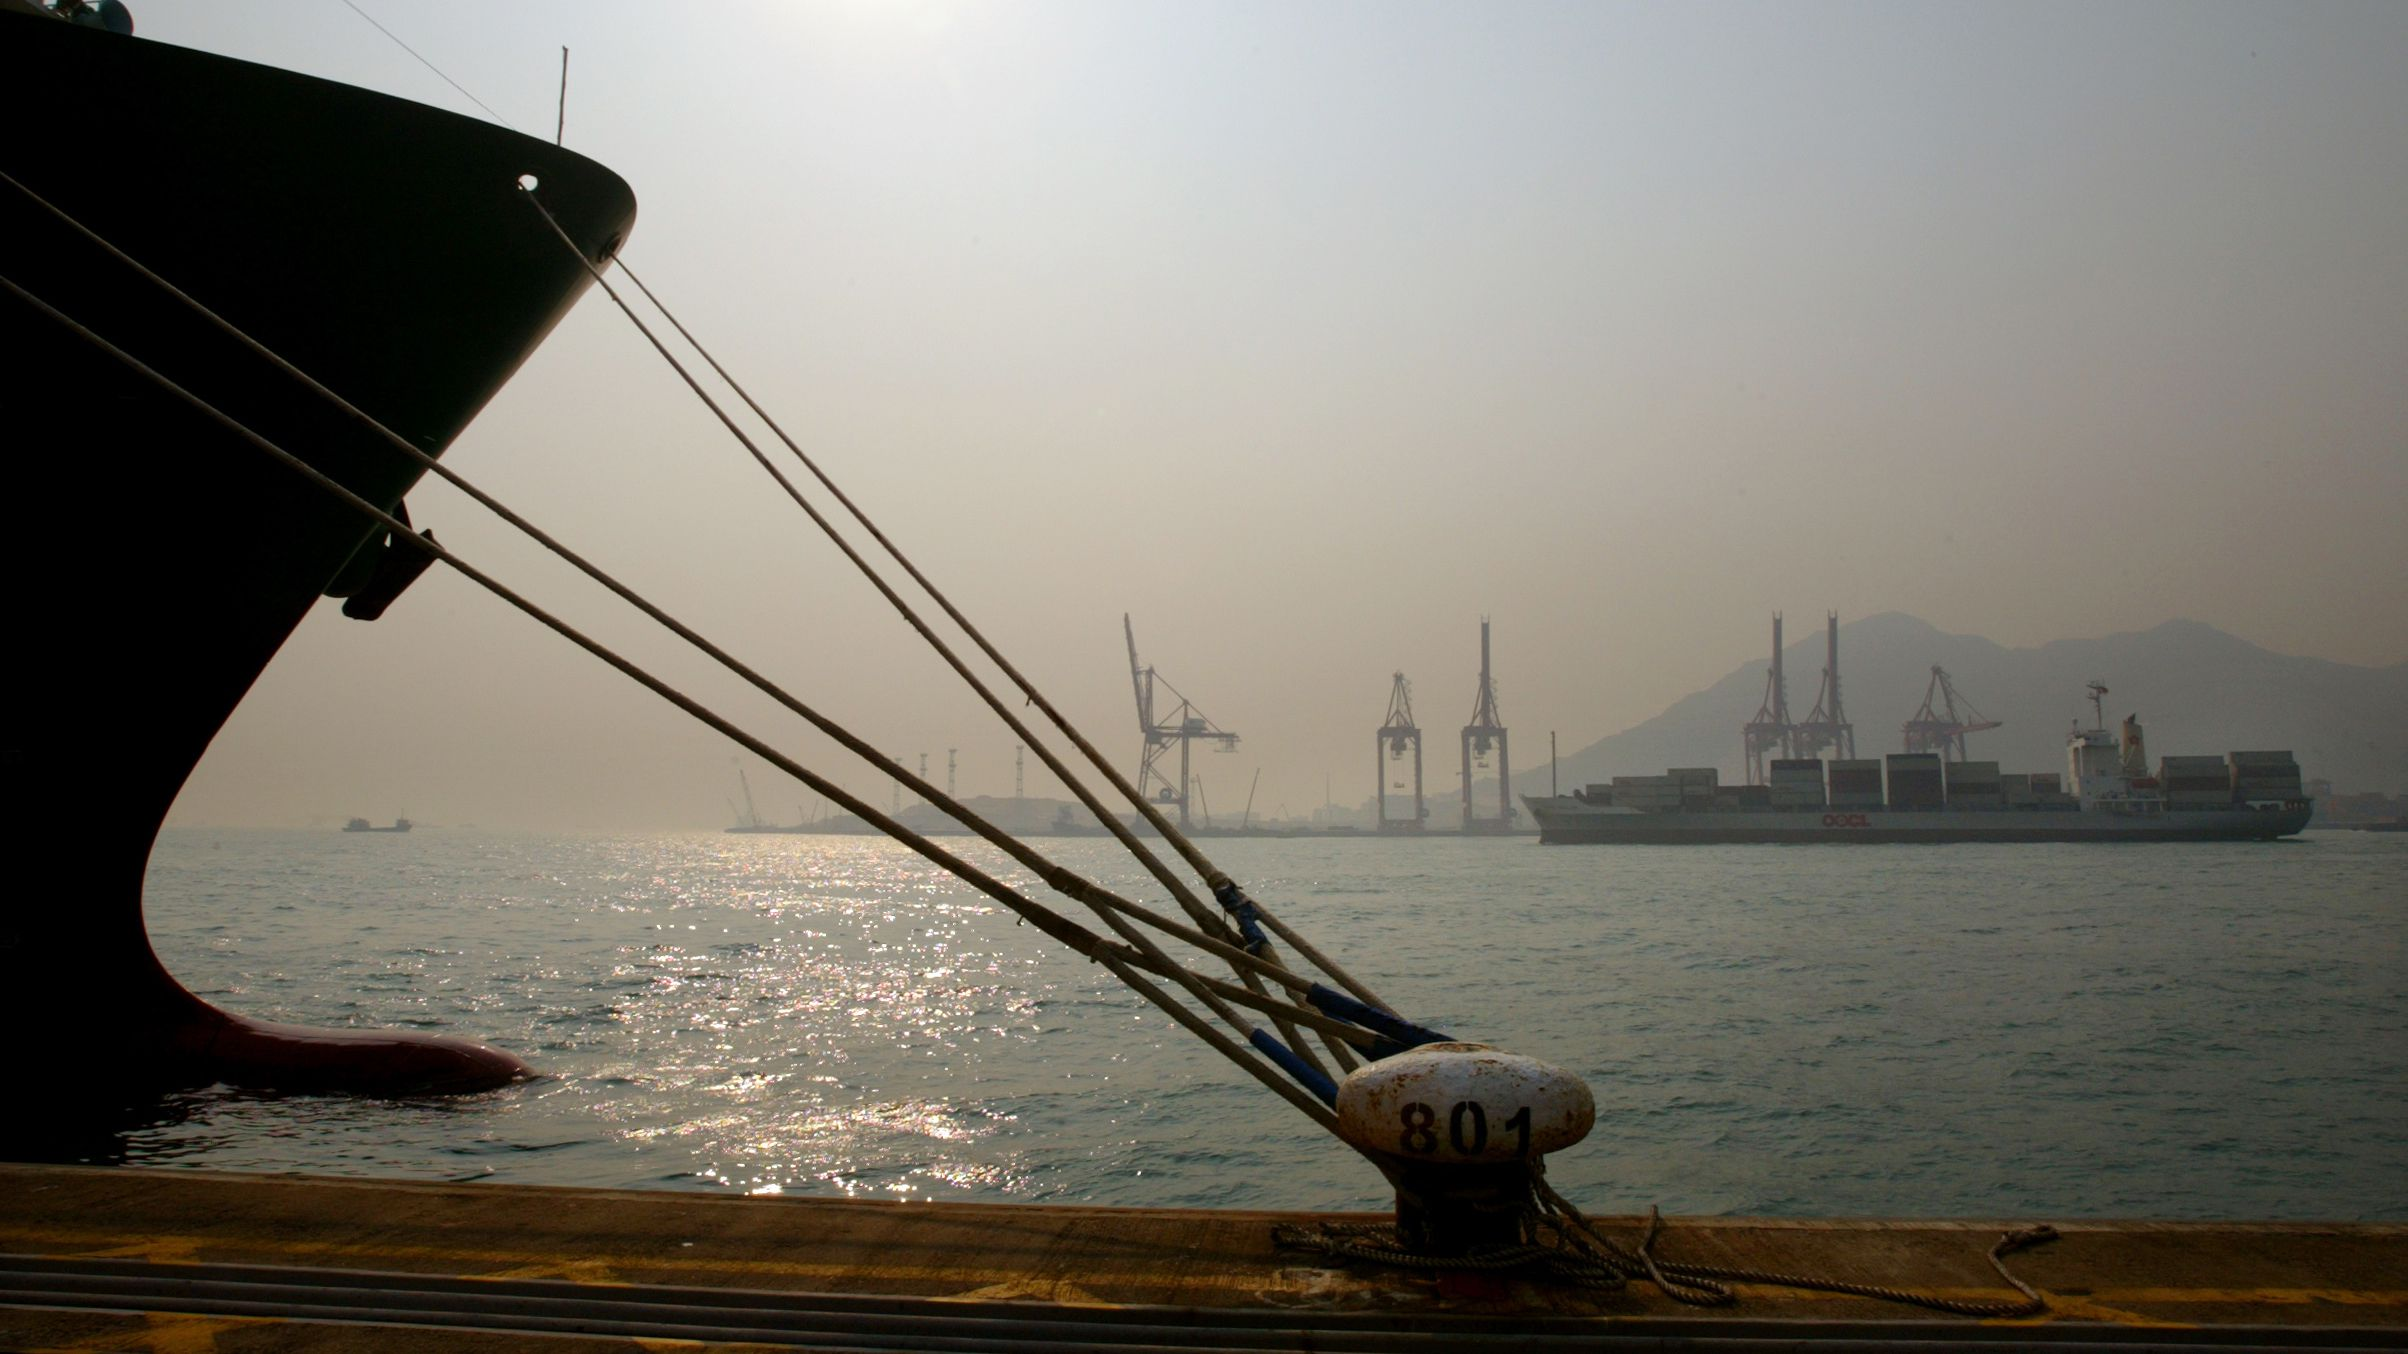 Containers are loaded onto a ship at Hong Kong's container terminal February 13, 2004. Hong Kong market sources said the Chinese government could delay container port development in Shenzhen, China, to avoid putting too much pressure on the world's busiest container port of Hong Kong, which has been losing market share to the cheaper Shenzhen port. NO RIGHTS CLEARANCES OR PERMISSIONS ARE REQUIRED FOR THIS IMAGE REUTERS/Kin Cheung KC/fa